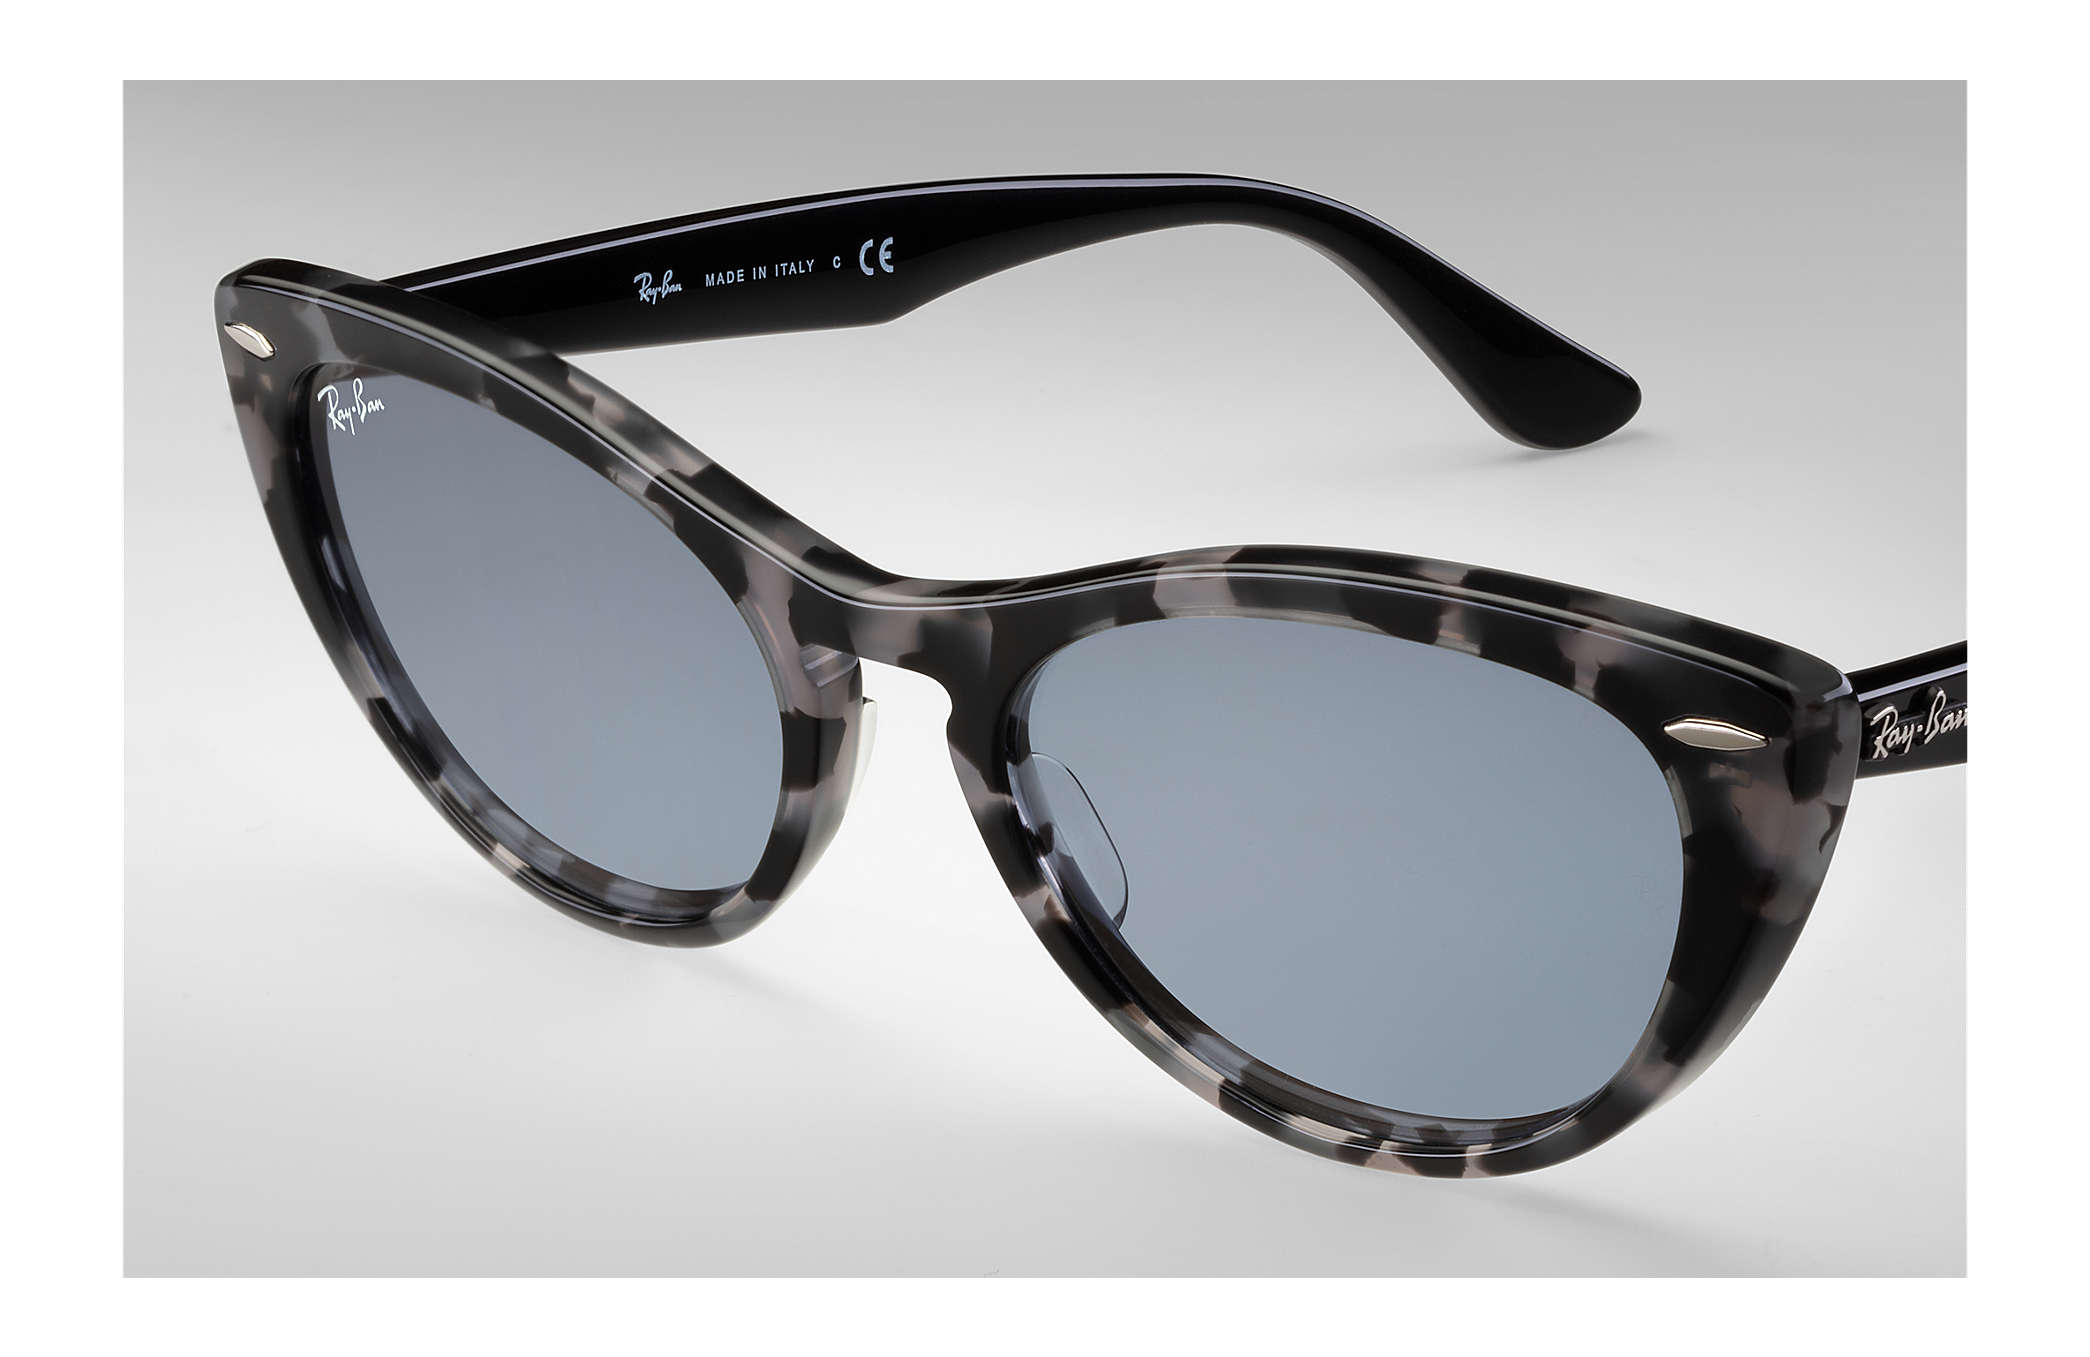 4fd90b8550fac Ray-Ban Nina RB4314N Grey Havana - Propionate - Blue Lenses ...